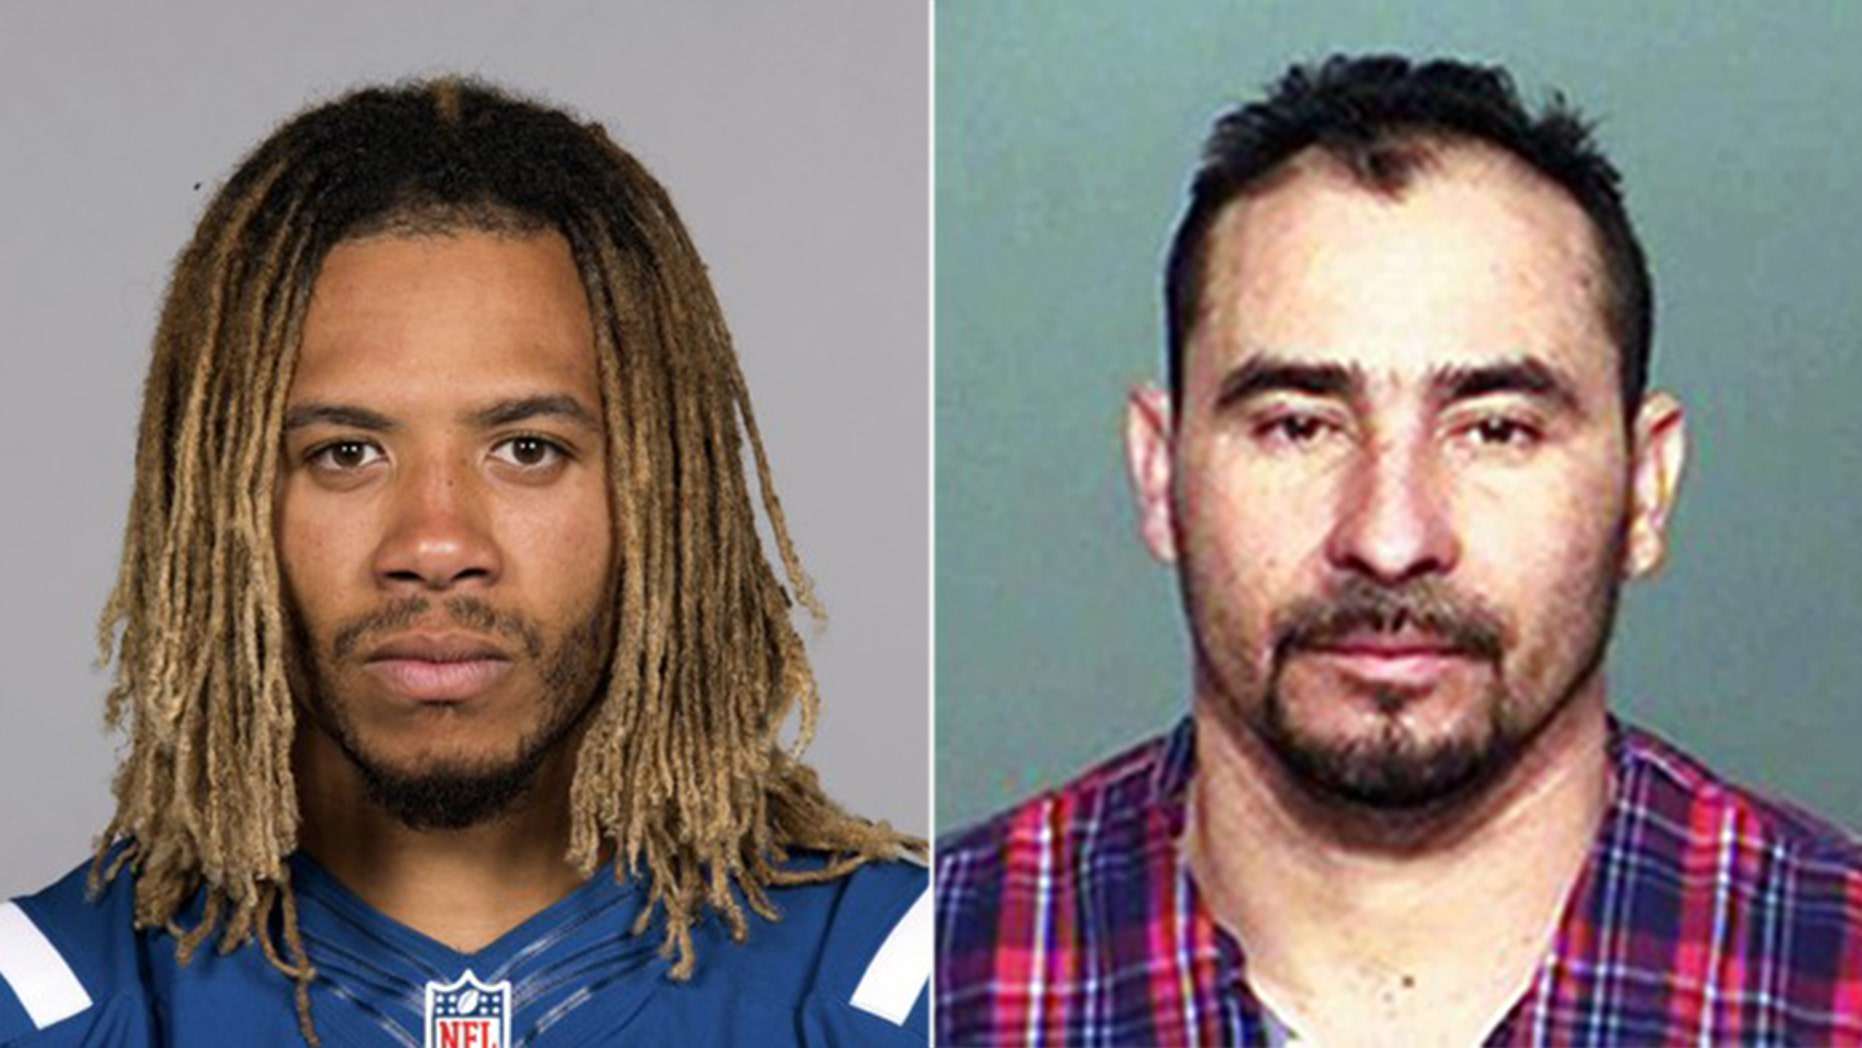 Manuel Orrego-Zavala, right, was charged Tuesday with illegally re-entering the U.S. following the suspected drunk driving crash Sunday that killed Indianapolis Colts linebacker Edwin Jackson.